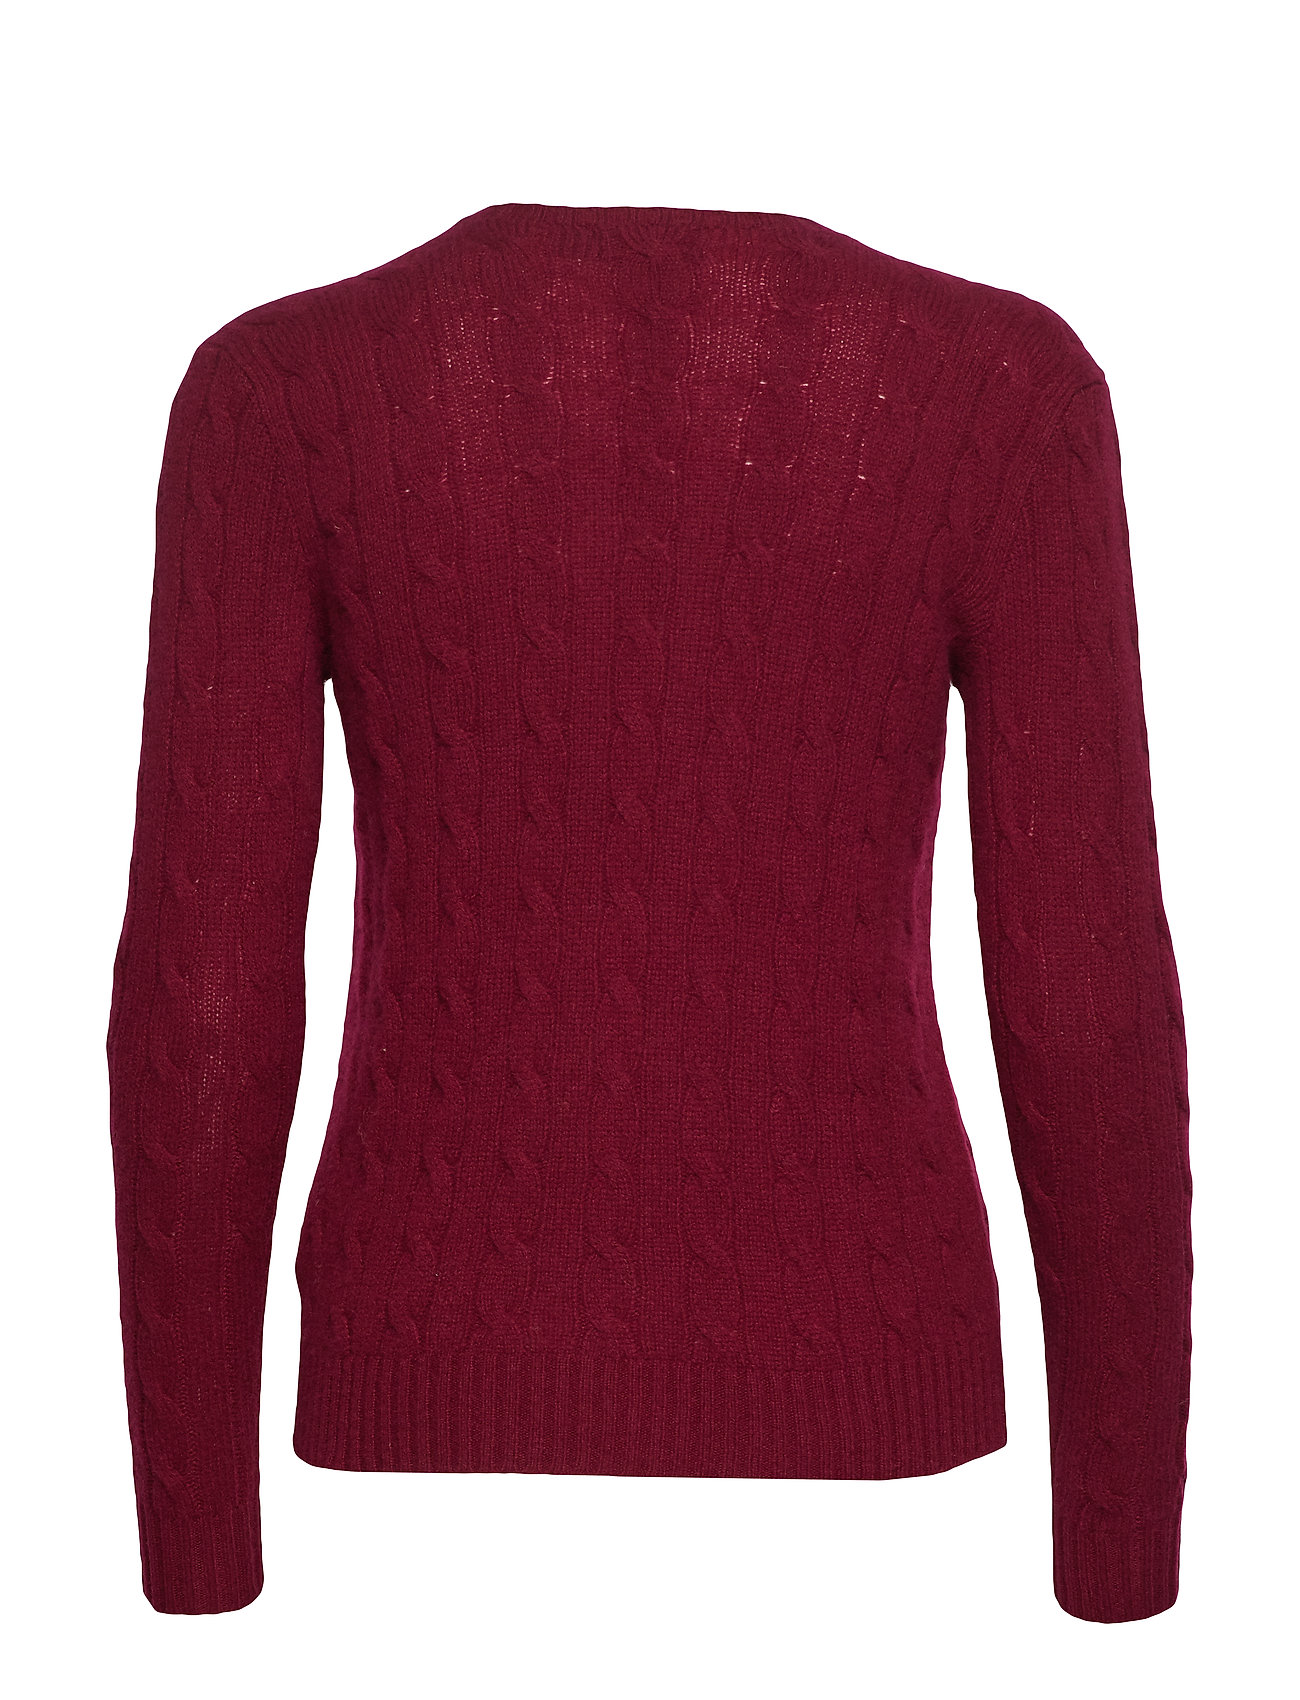 Wool SweaterburgundyPolo cashmere Cable Ralph Lauren hrsQdCt